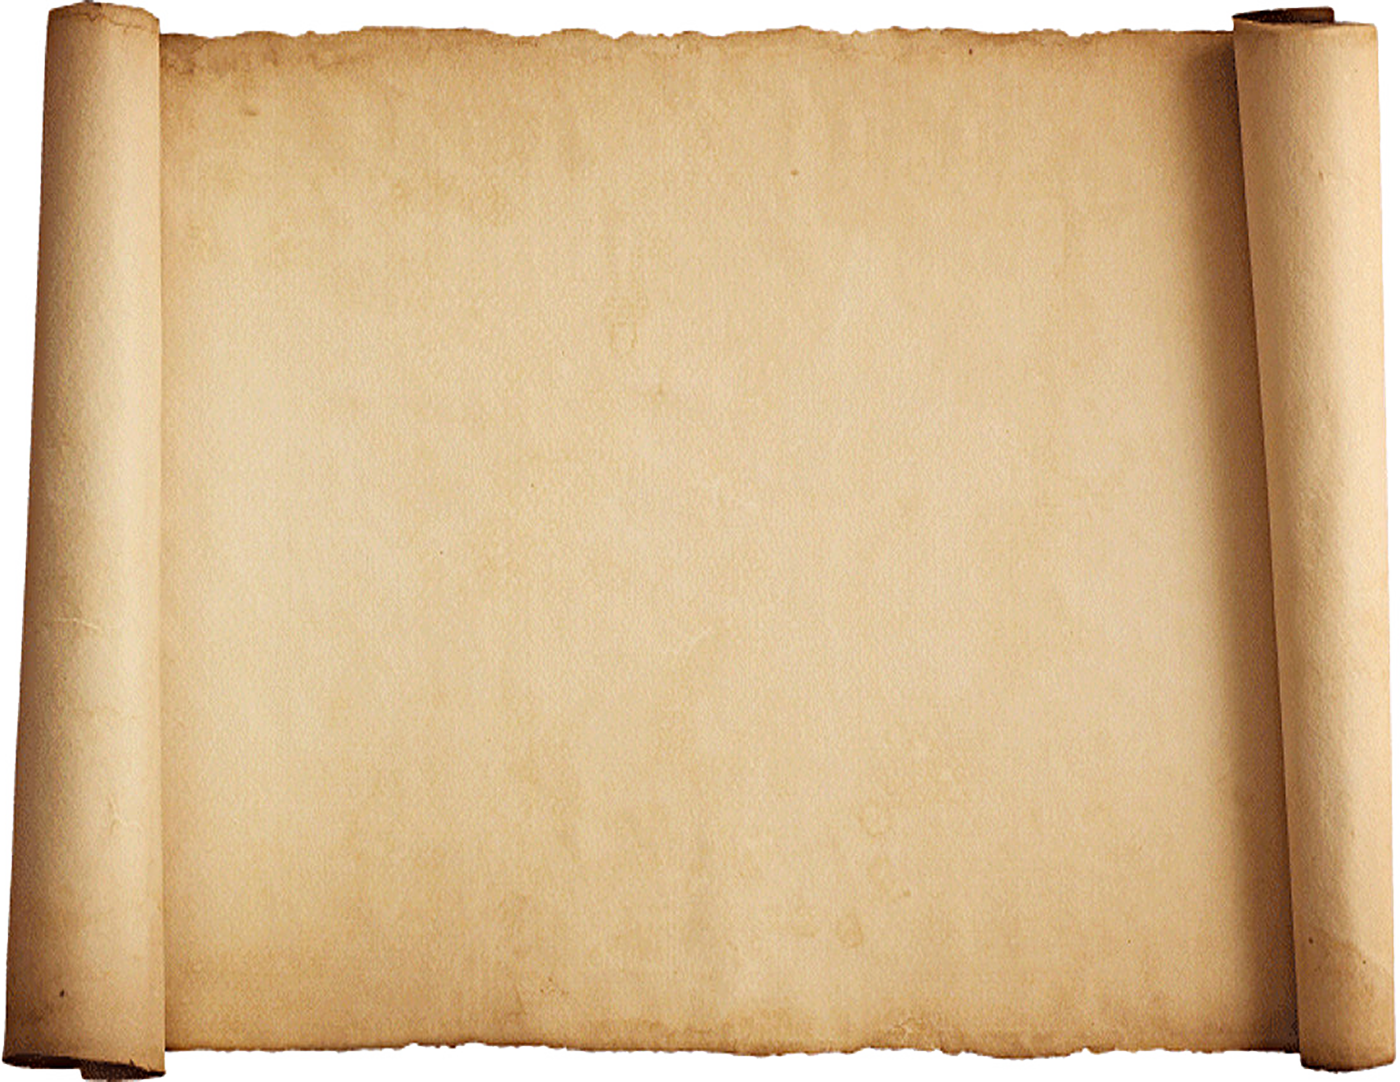 Displaying 16 Images For Parchment Scroll Png Parchment Background Blank Scrolls Parchment